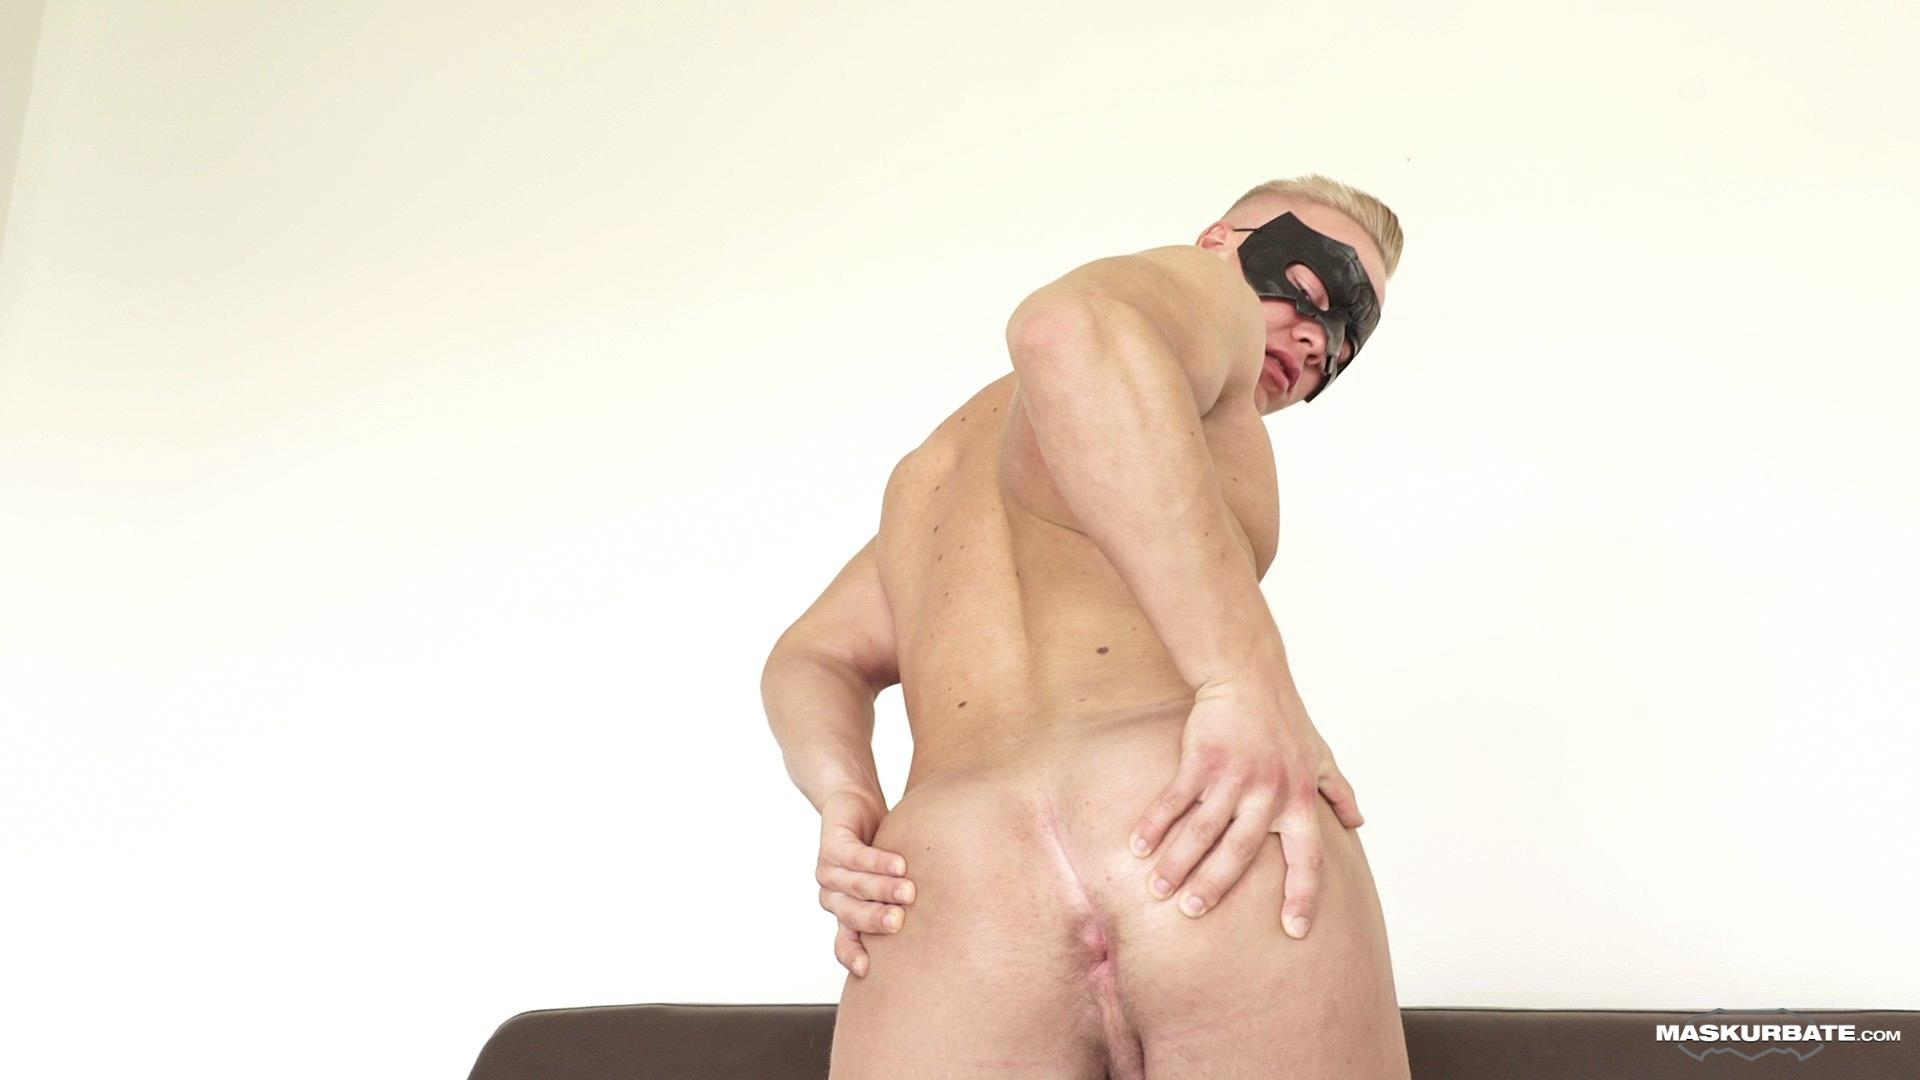 Maskurbate-Mickey-Big-Uncut-Cock-Muscle-Hunk-Jerking-Off-Video-09 Big Uncut Cock Blond Muscle Hunk Auditions For Gay Porn